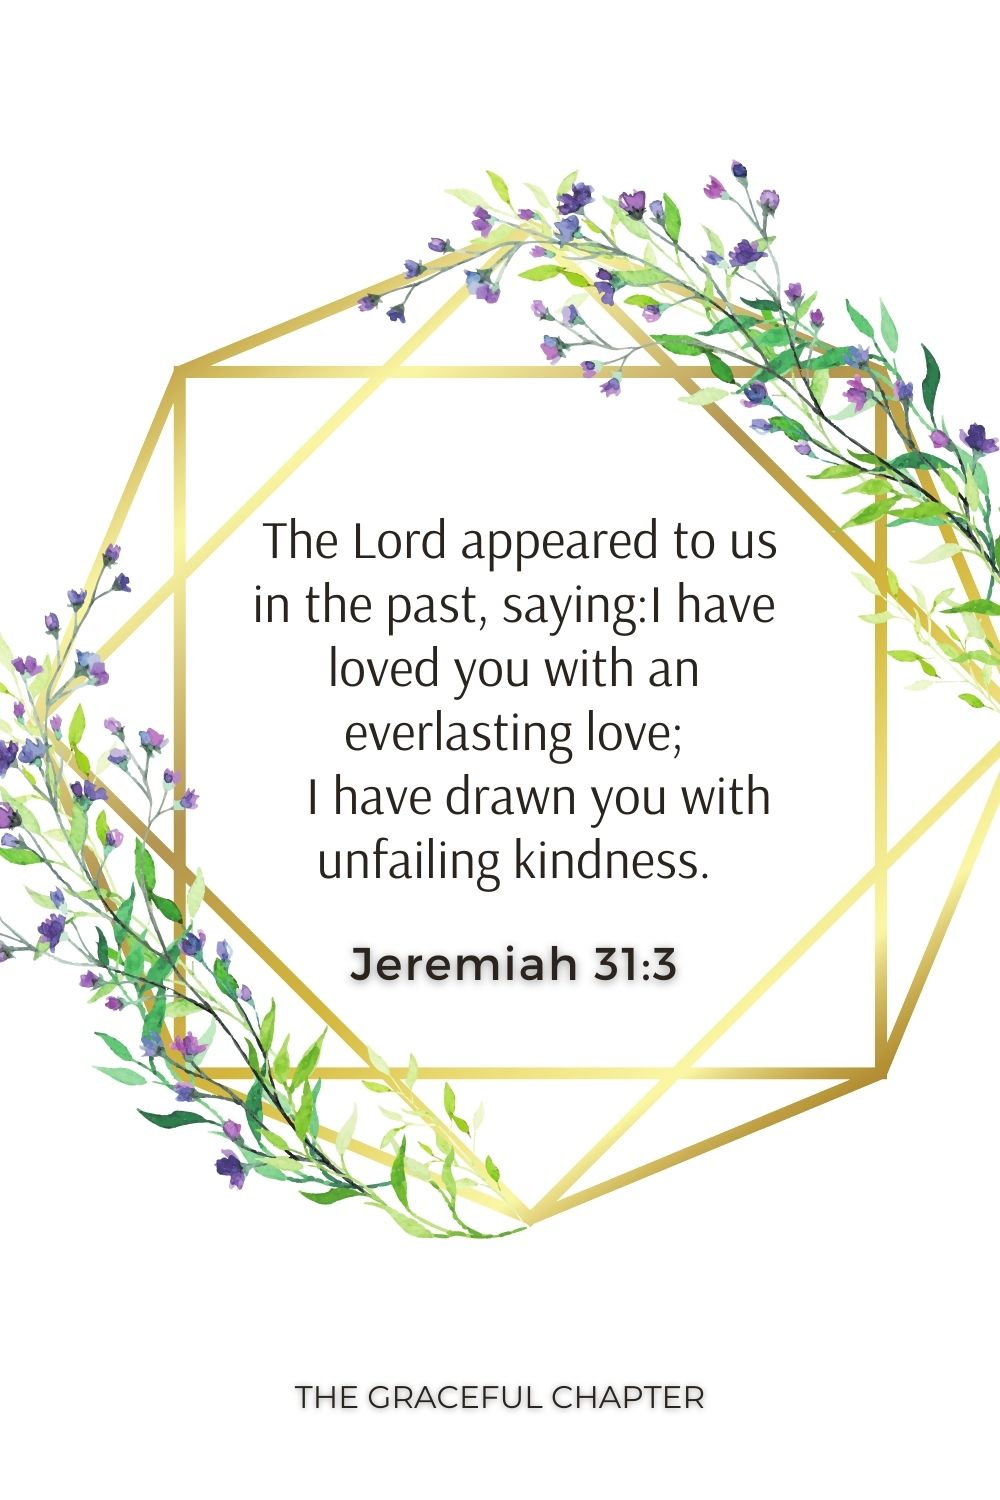 The Lord appeared to us in the past, saying:I have loved you with an everlasting love;     I have drawn you with unfailing kindness. Jeremiah 31:3